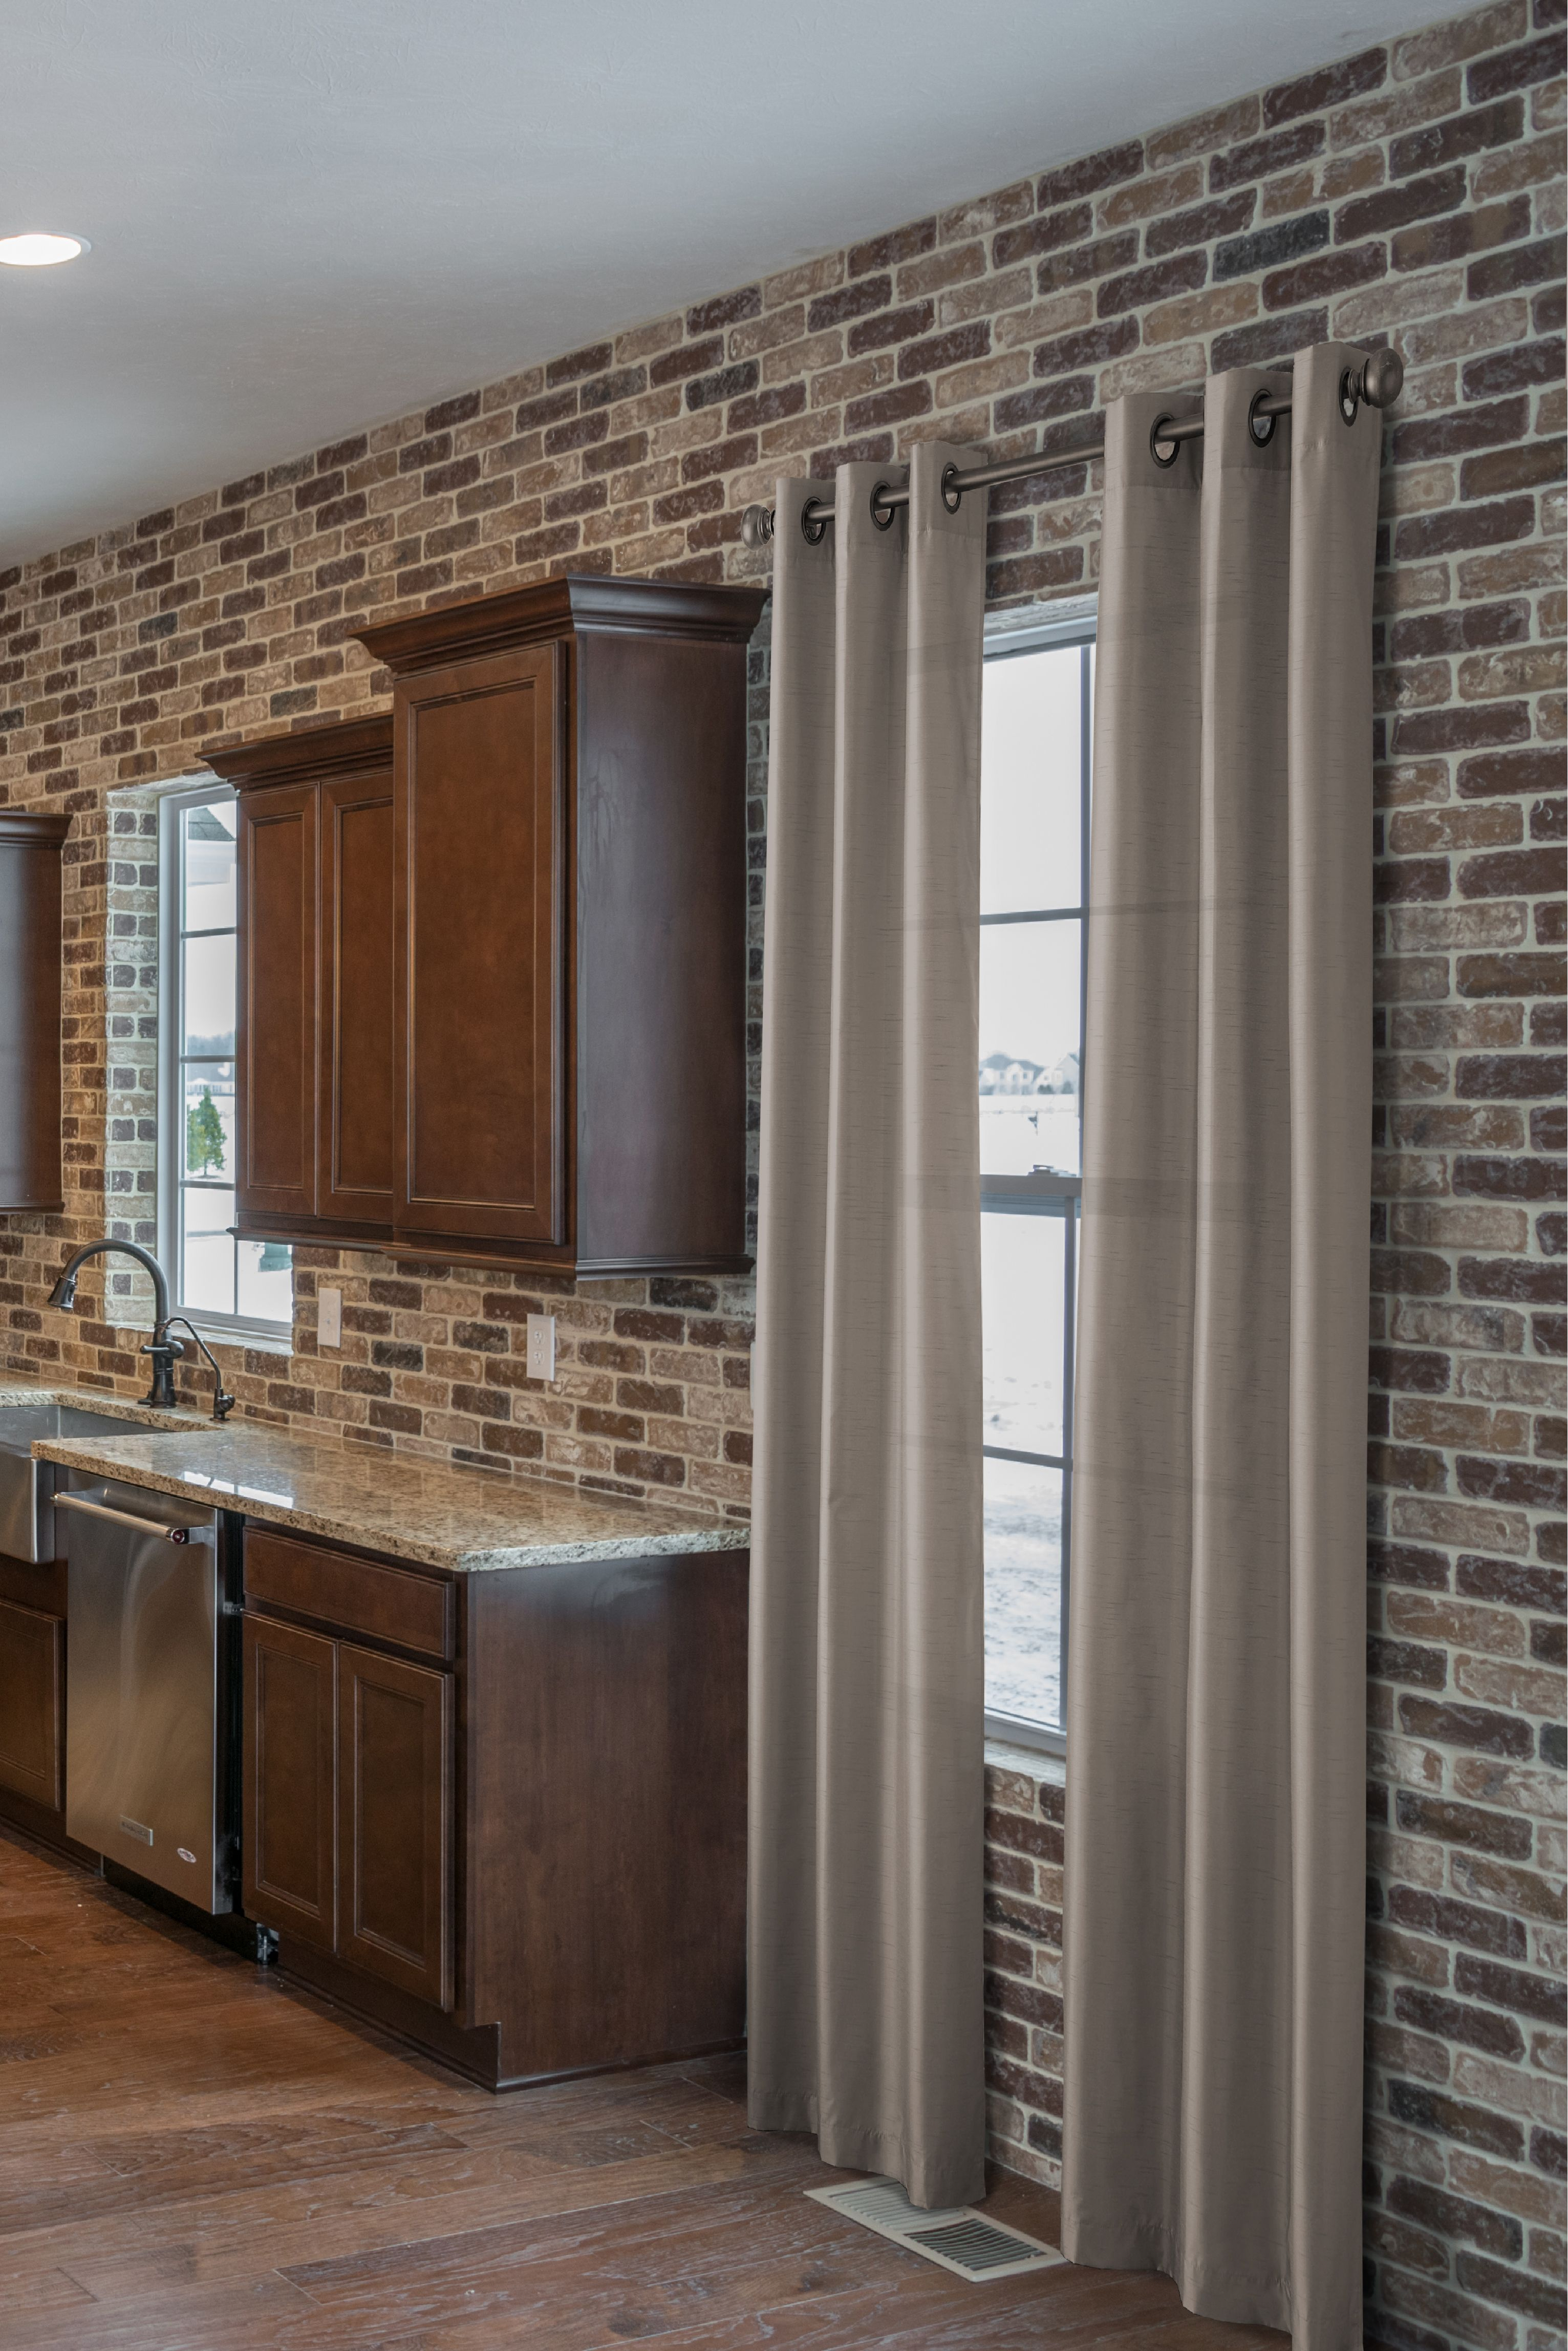 10 Kitchen And Home Decor Items Every 20 Something Needs: Embarcadero Thin Brick Made By McNear. This Homeowner Went